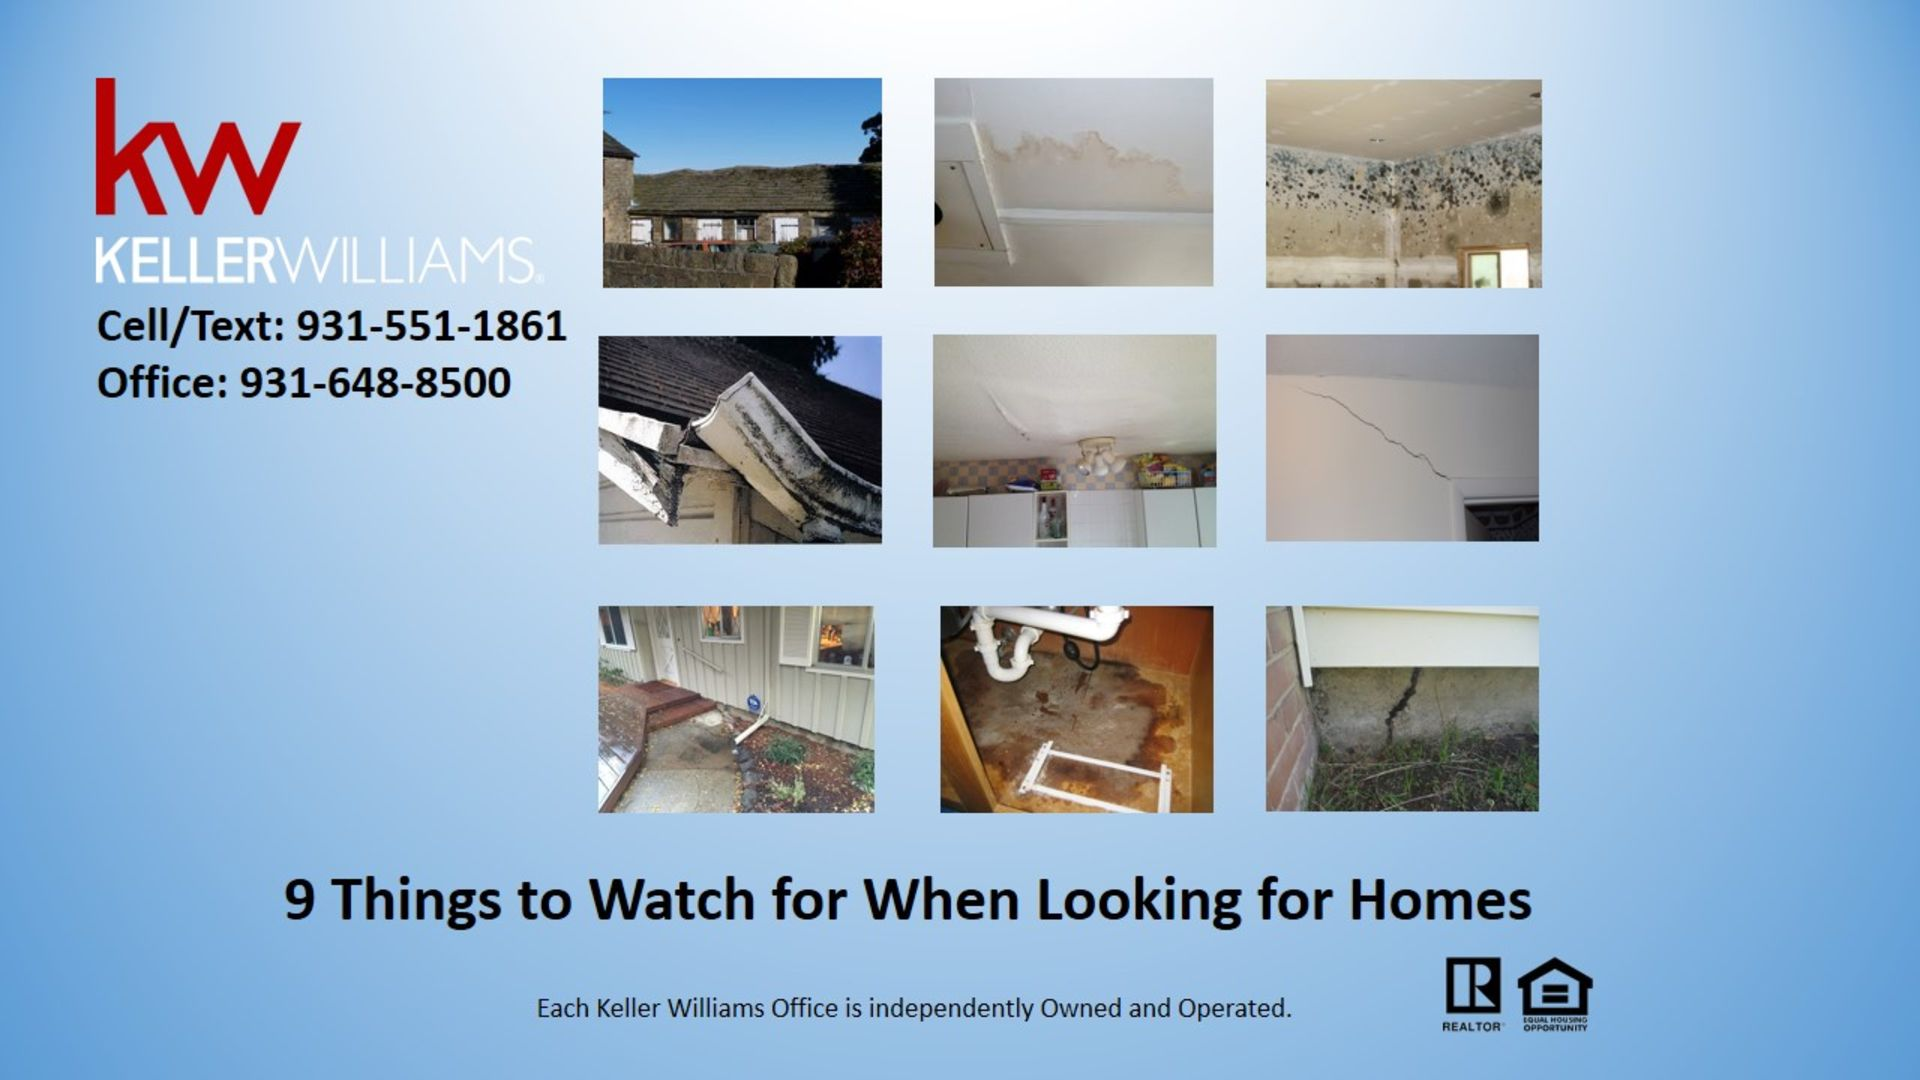 9 Things to Watch for When Looking for Homes